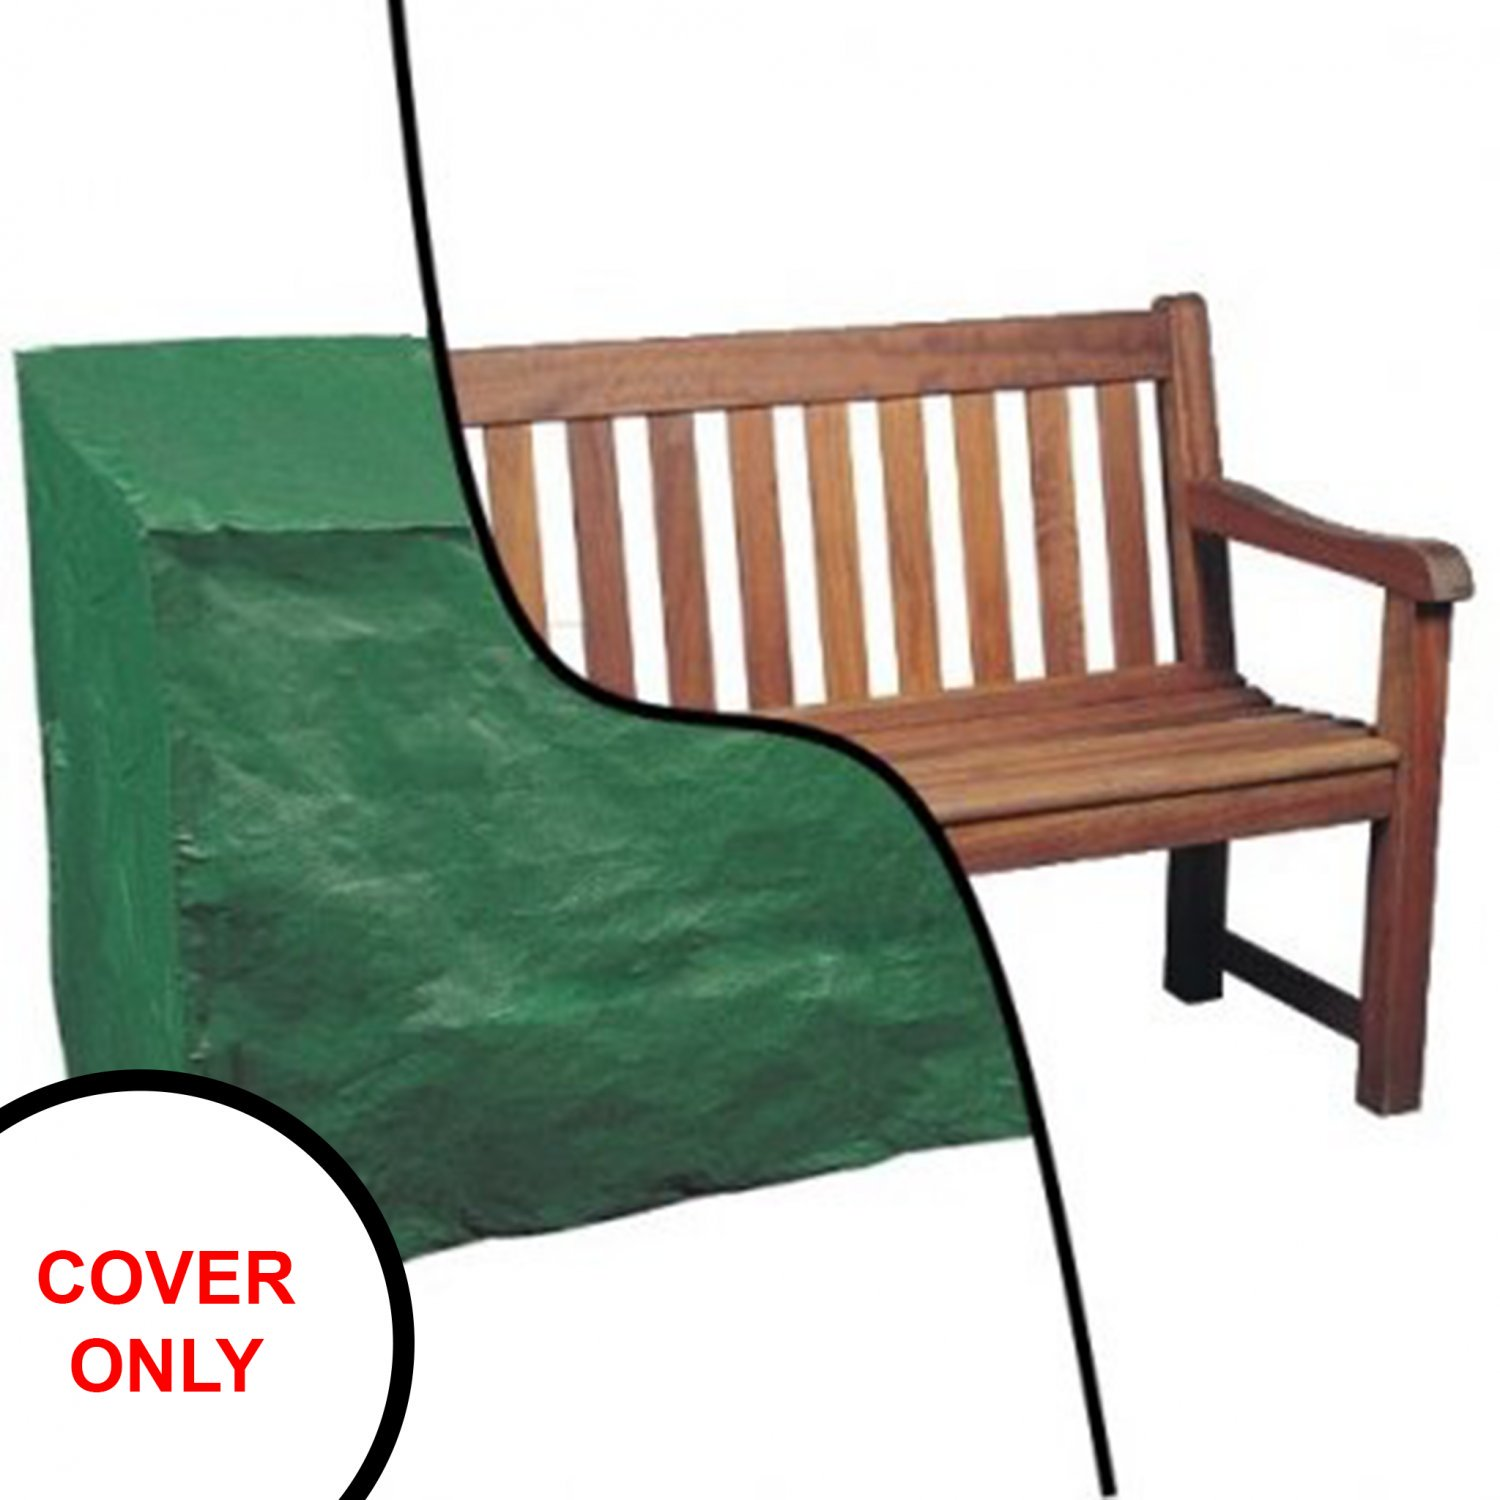 Waterproof 5ft 1.5m Garden Furniture 3 Seater Bench Seat Cover